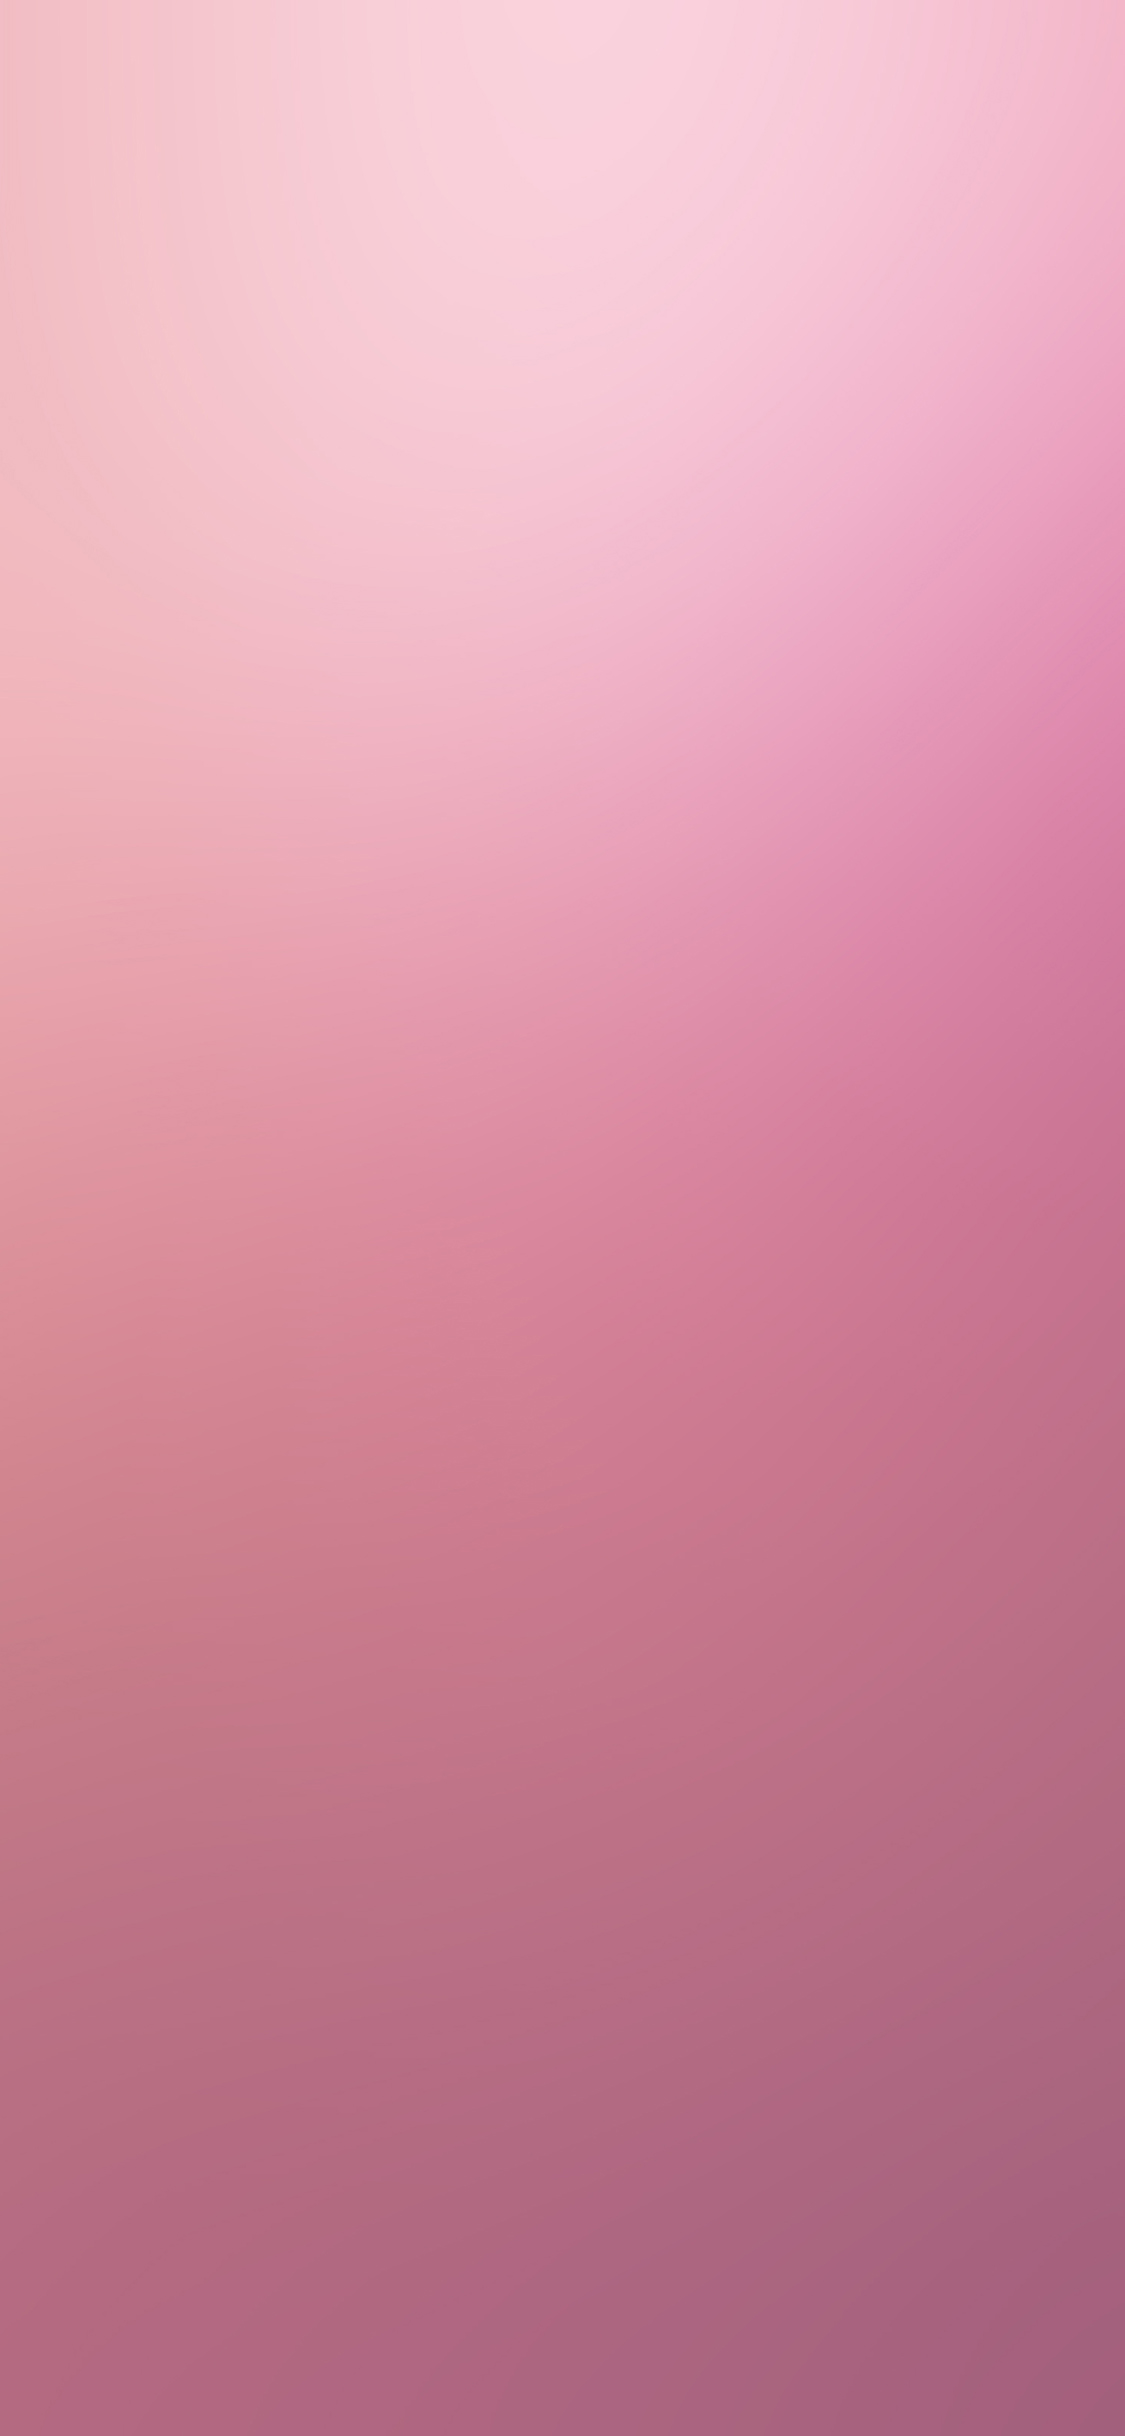 iPhoneXpapers.com-Apple-iPhone-wallpaper-sd38-love-like-you-die-tomorrow-gradation-blur